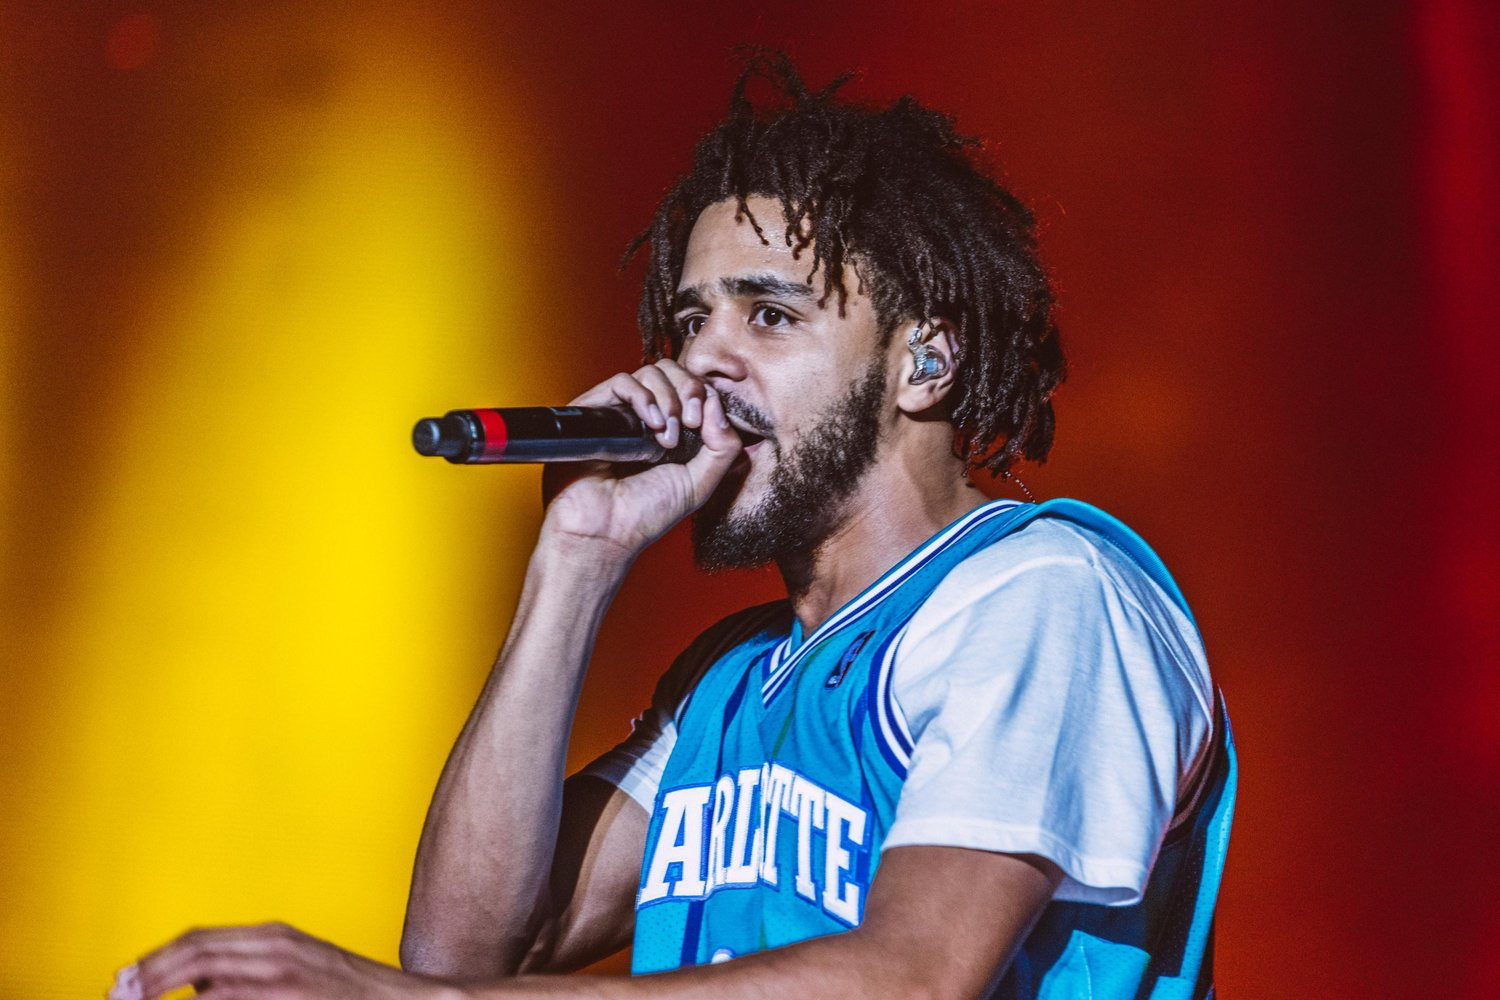 Chance The Rapper Iphone Wallpaper J Cole Wallpapers High Quality Download Free